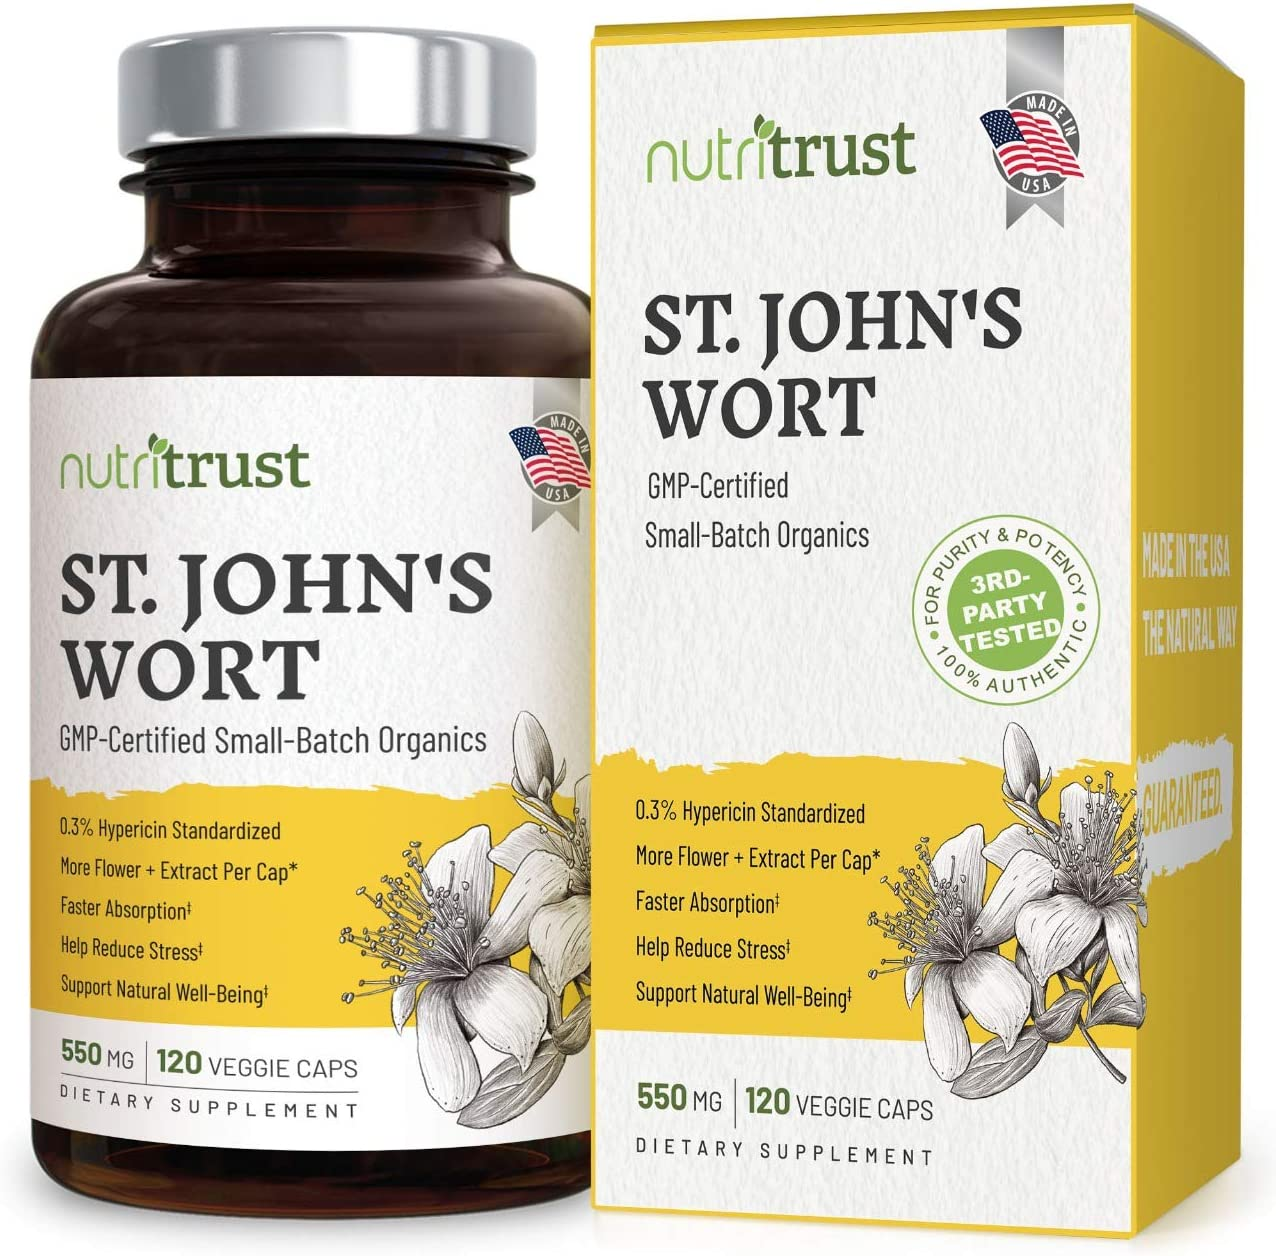 1 Best St Johns Wort Stronger 120 Ct 1200mcg Hypericin 550mg Pure Vegan Saint Johns Wort Capsules with Extract and Powder for Potent Non-GMO Mood Boosting